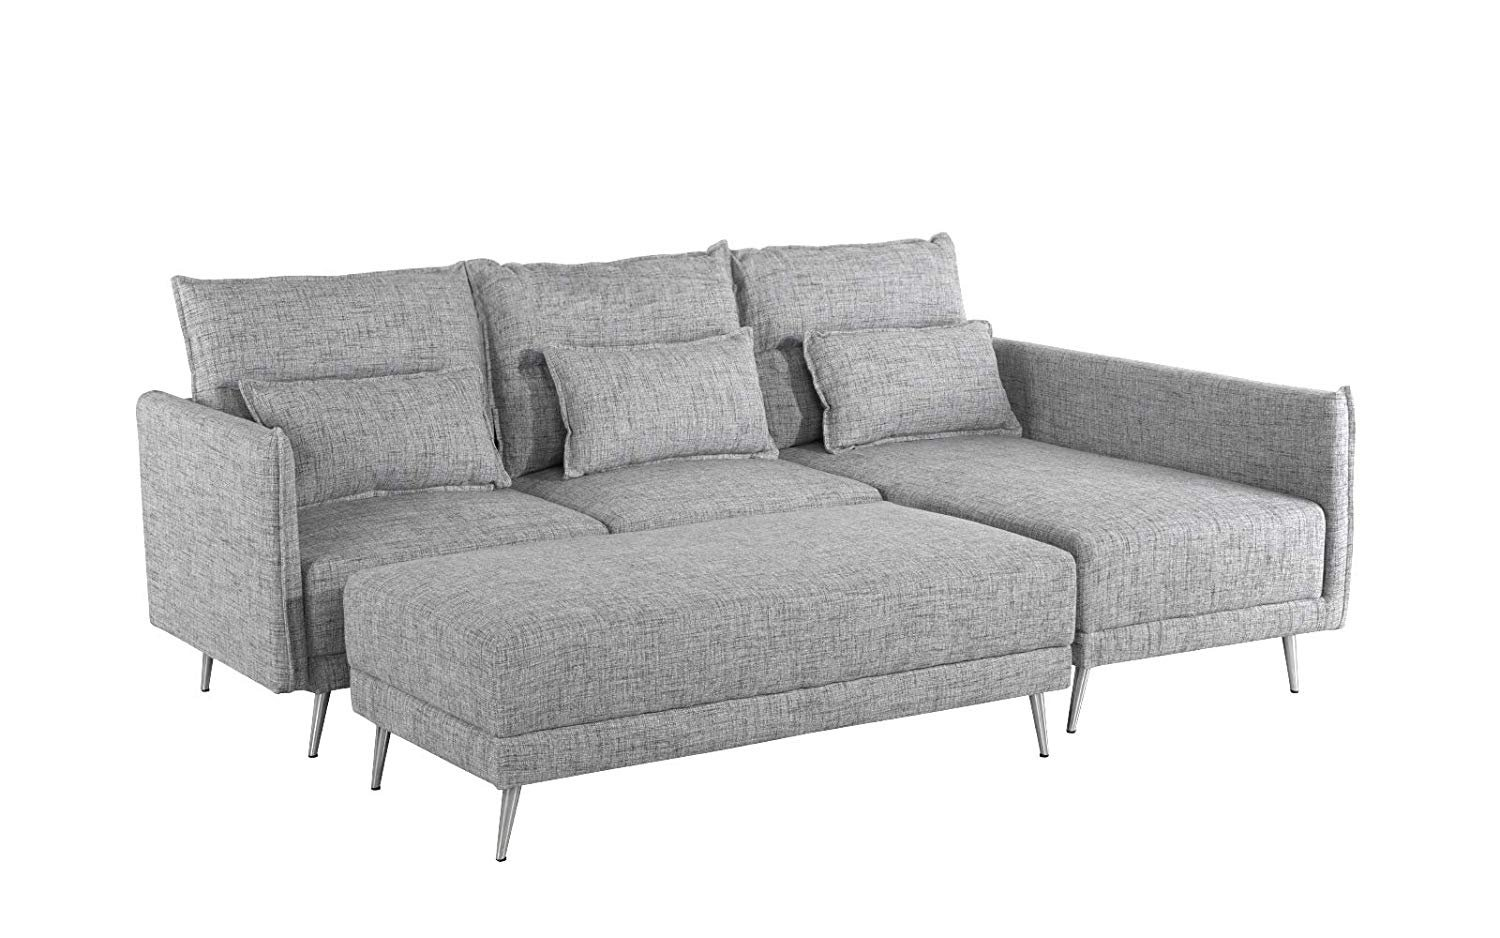 Sensational Upholstered 88 1 Inch Sectional Sofa L Shape Couch With Bralicious Painted Fabric Chair Ideas Braliciousco